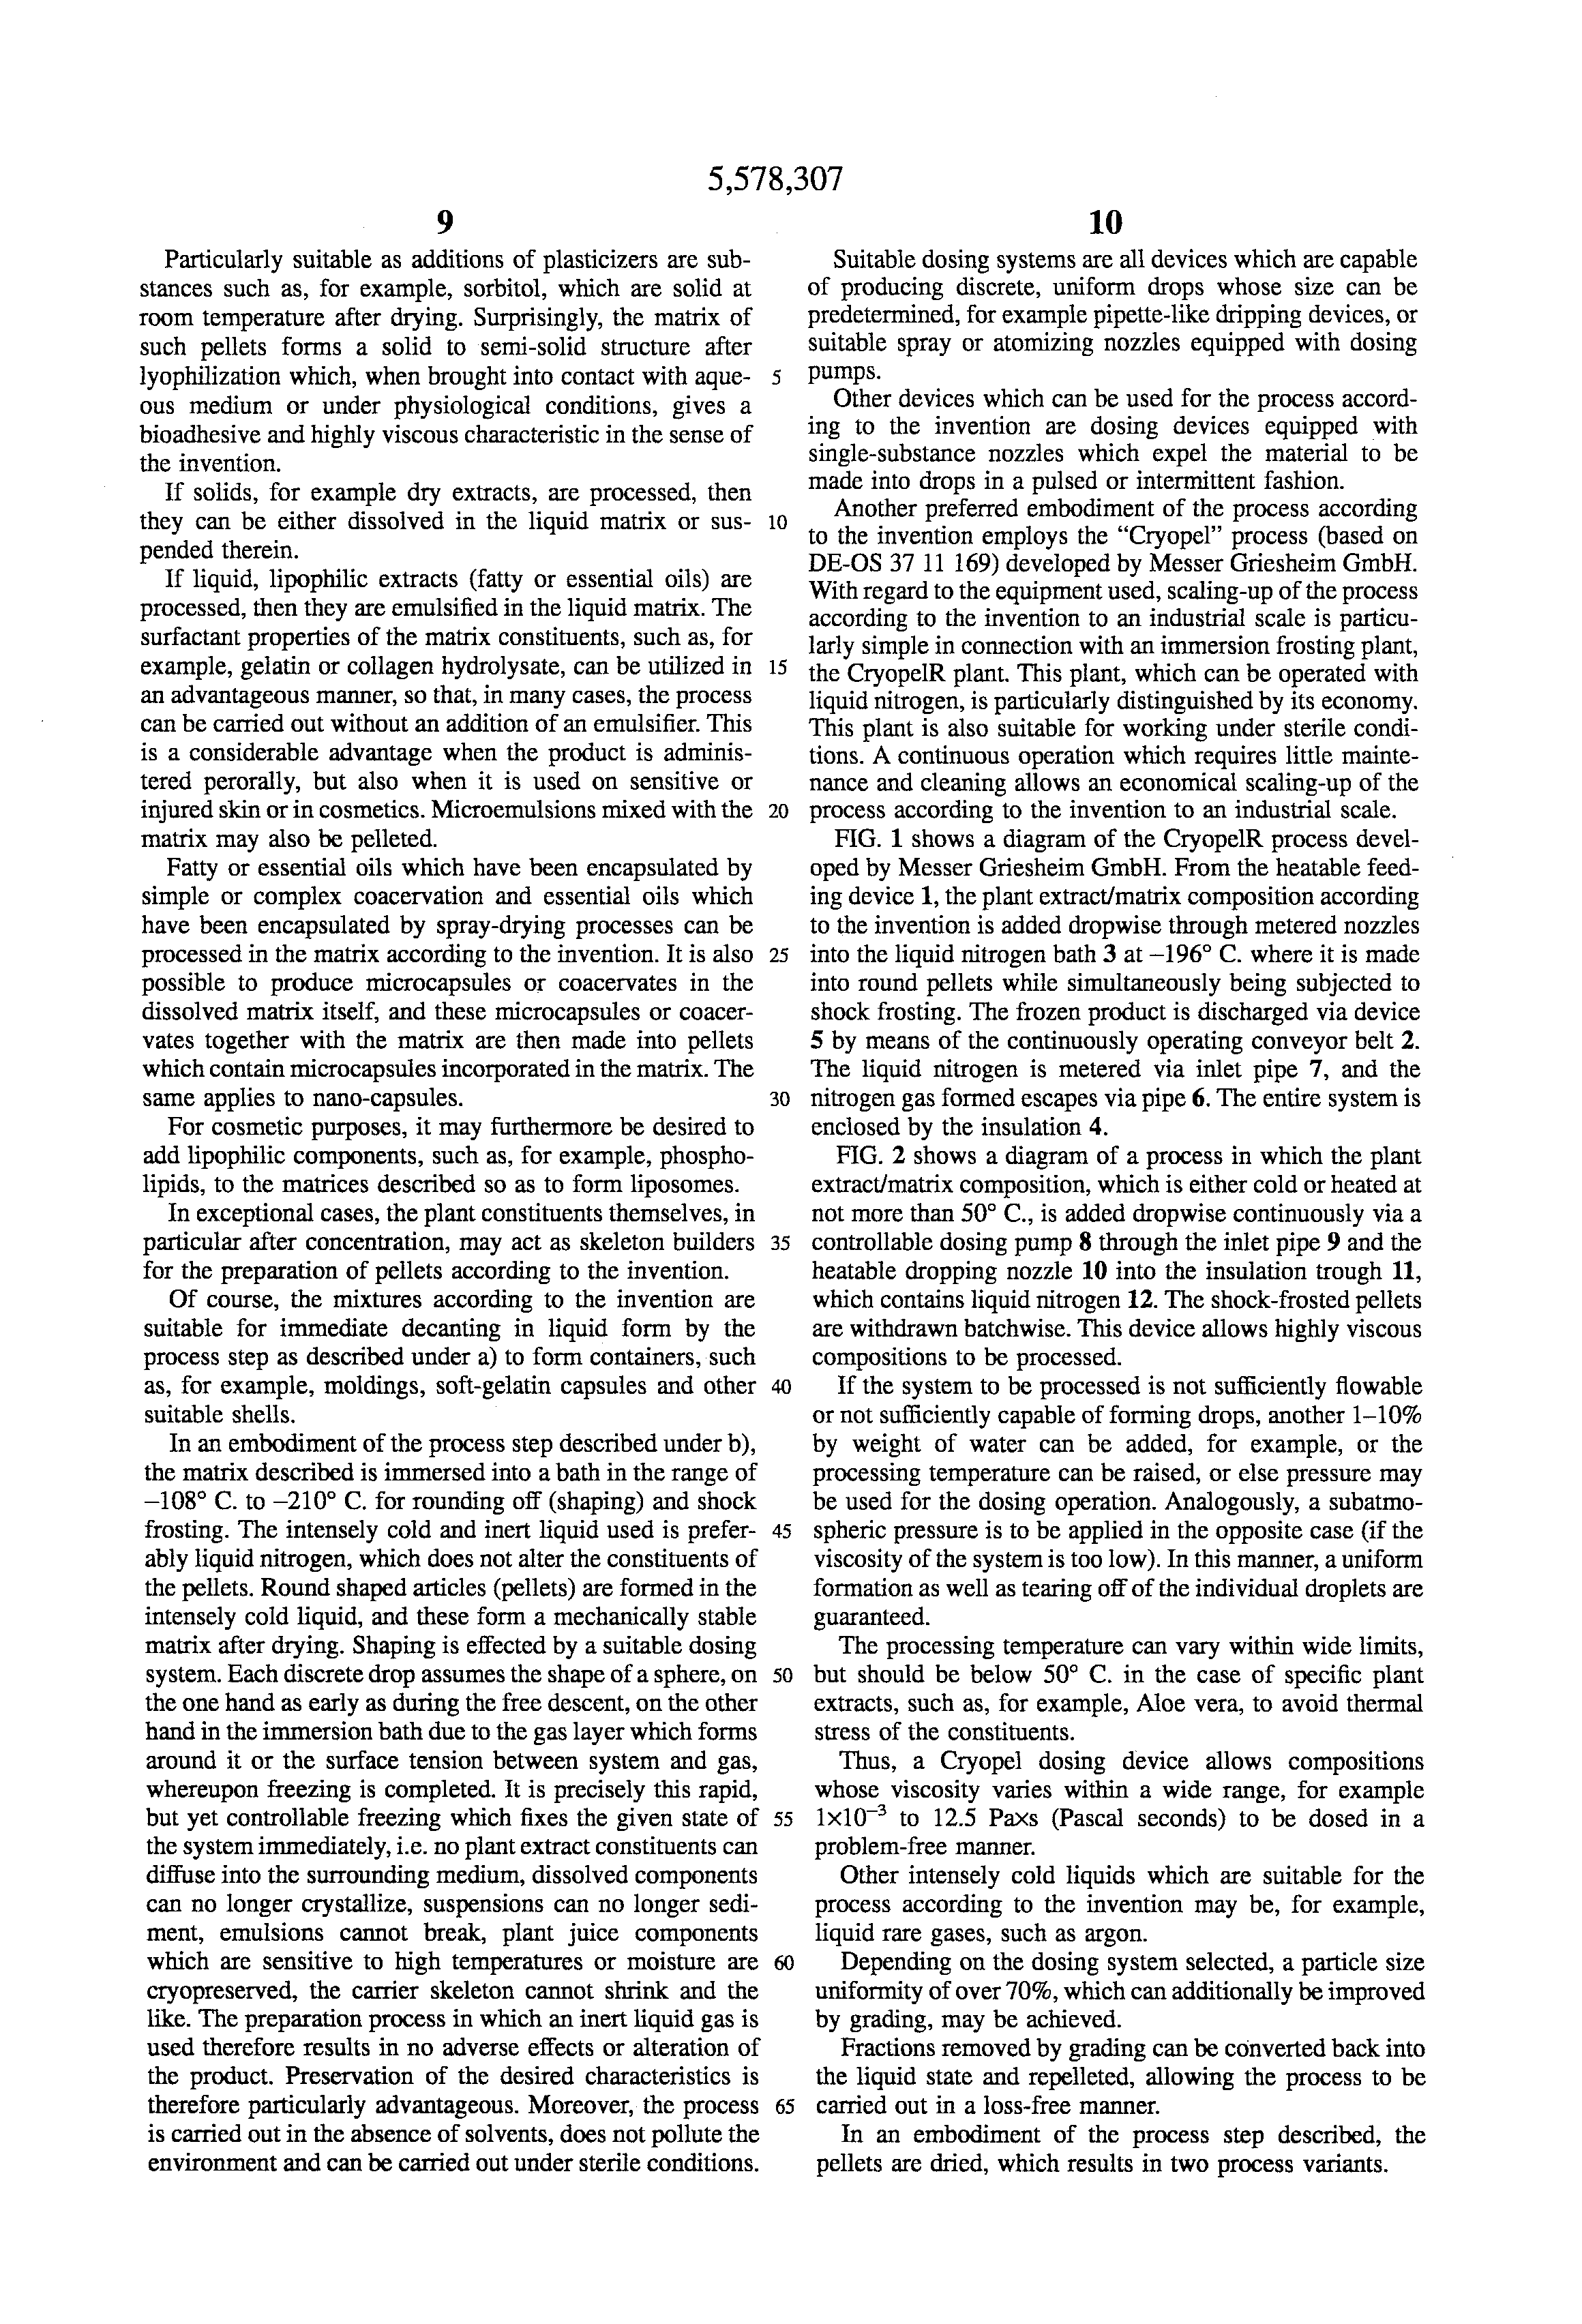 extract a particular page from a pdf